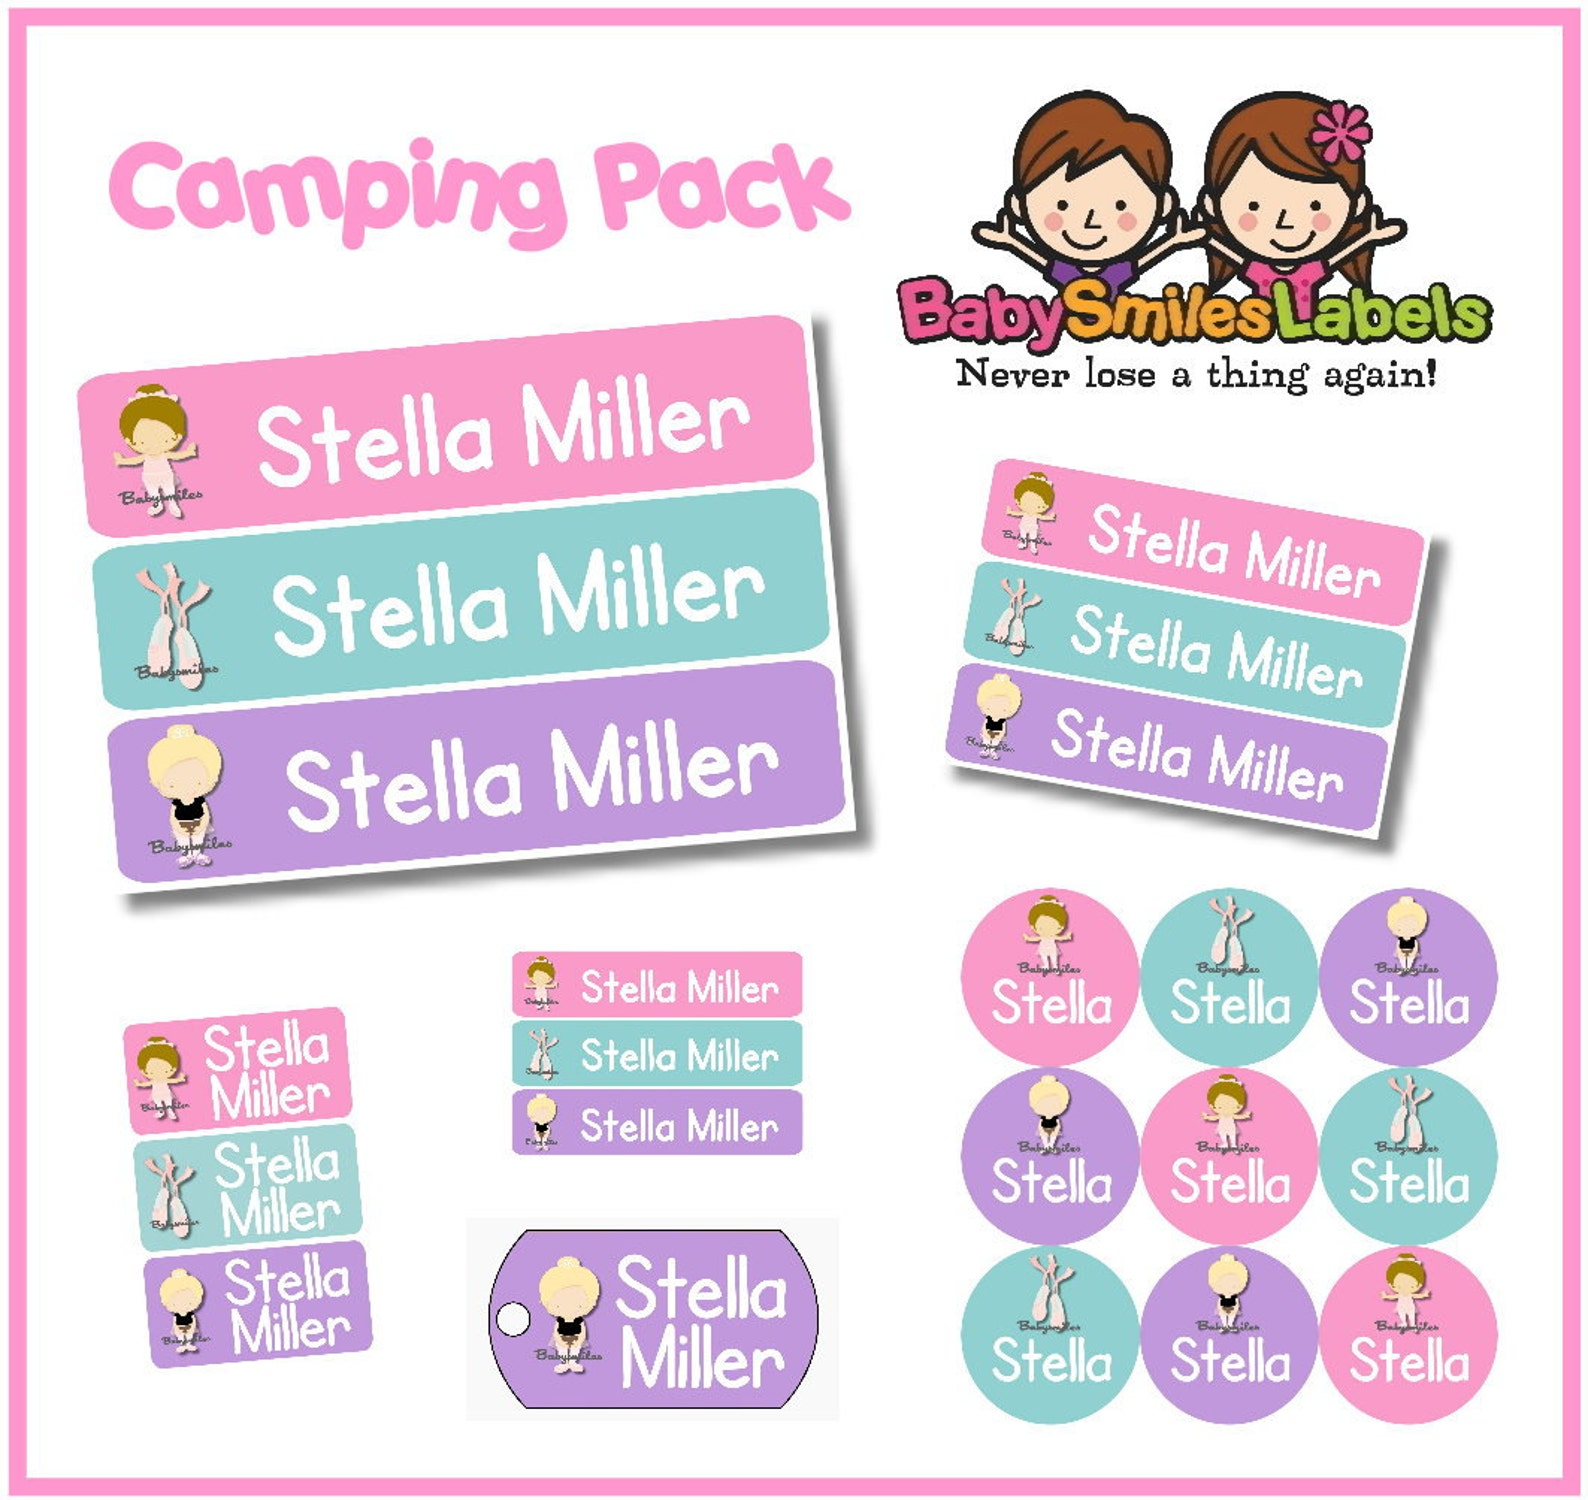 camp pack - personalized waterproof labels shoe labels clothing tag labels bag tags daycare labels name labels - sweet ballet